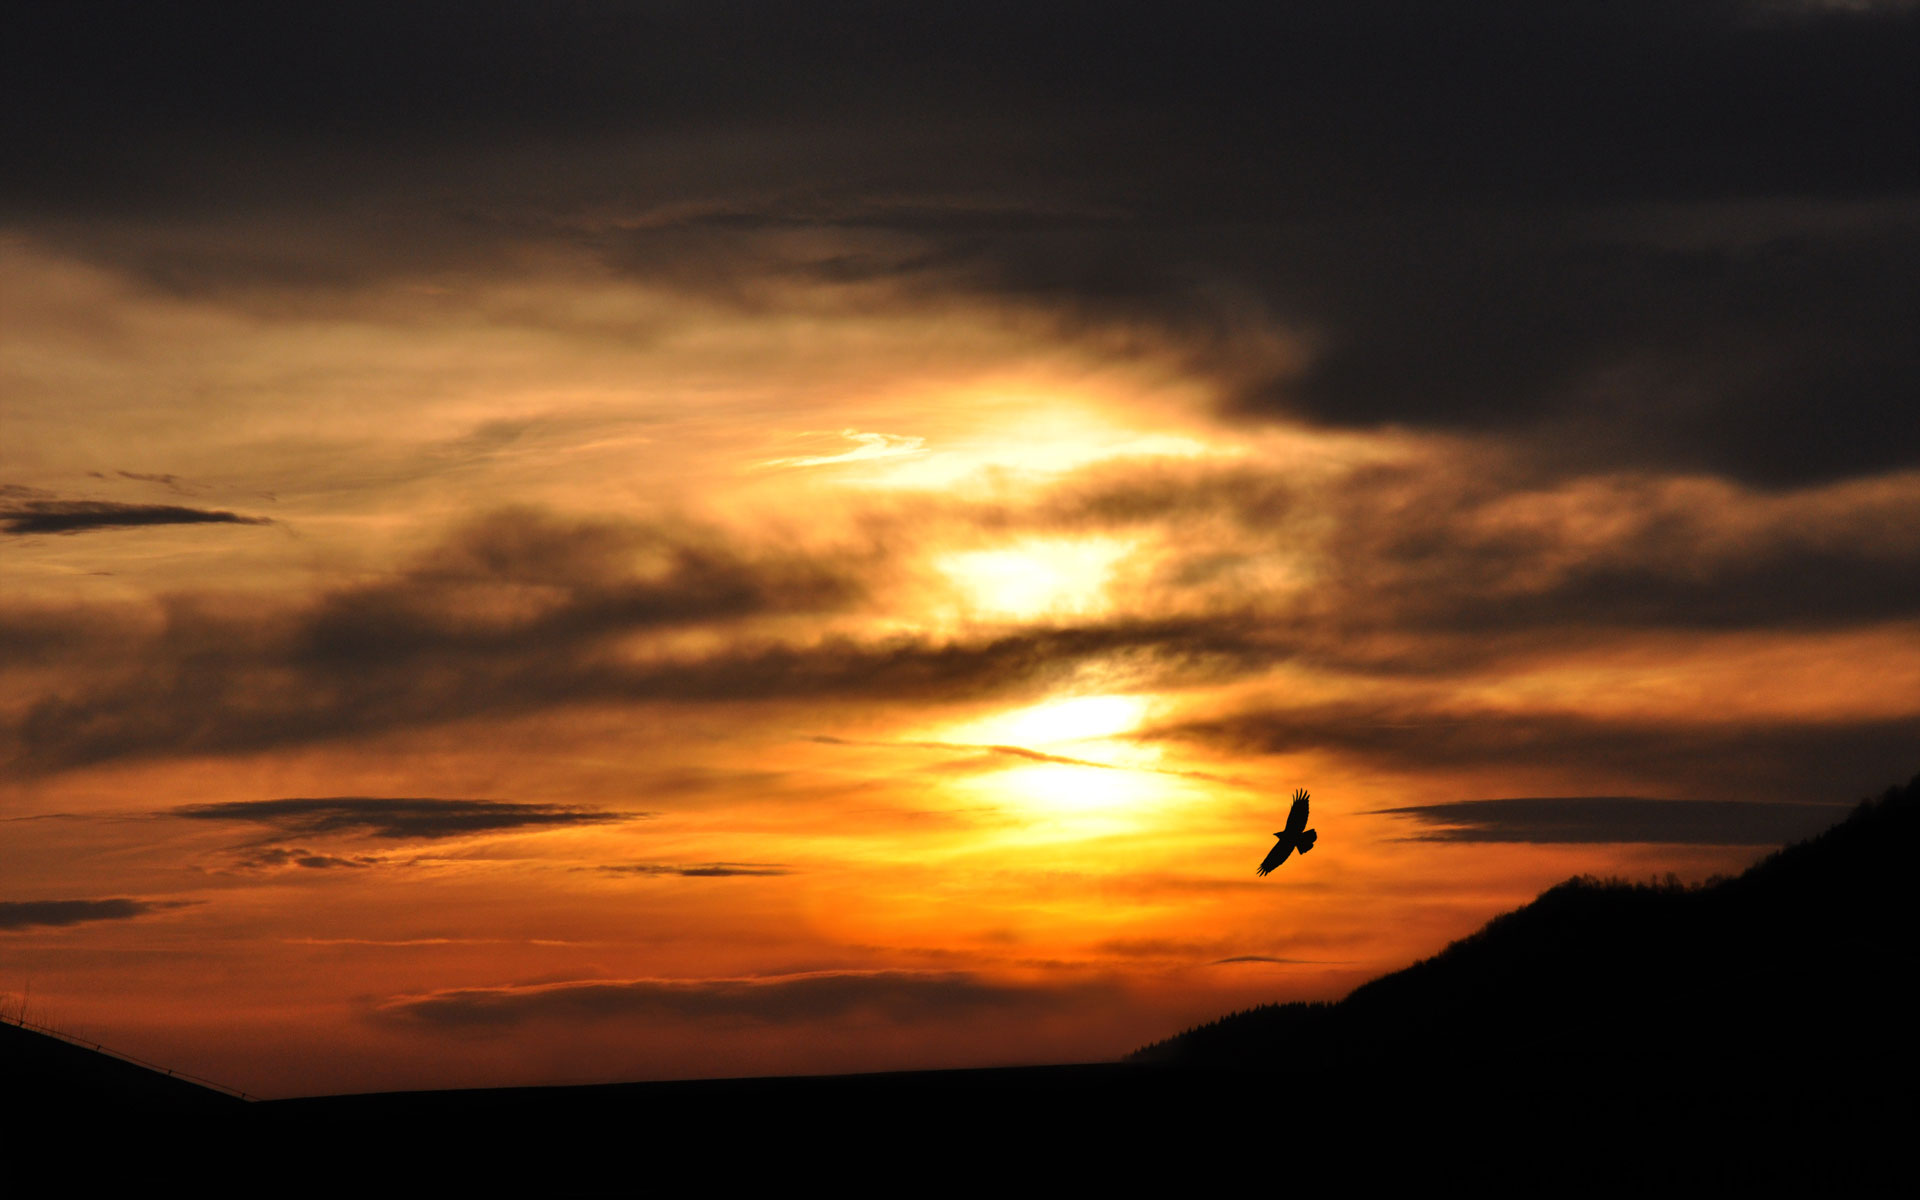 Free Sunset Silhouette Wallpaper 38080 2560x1600 px